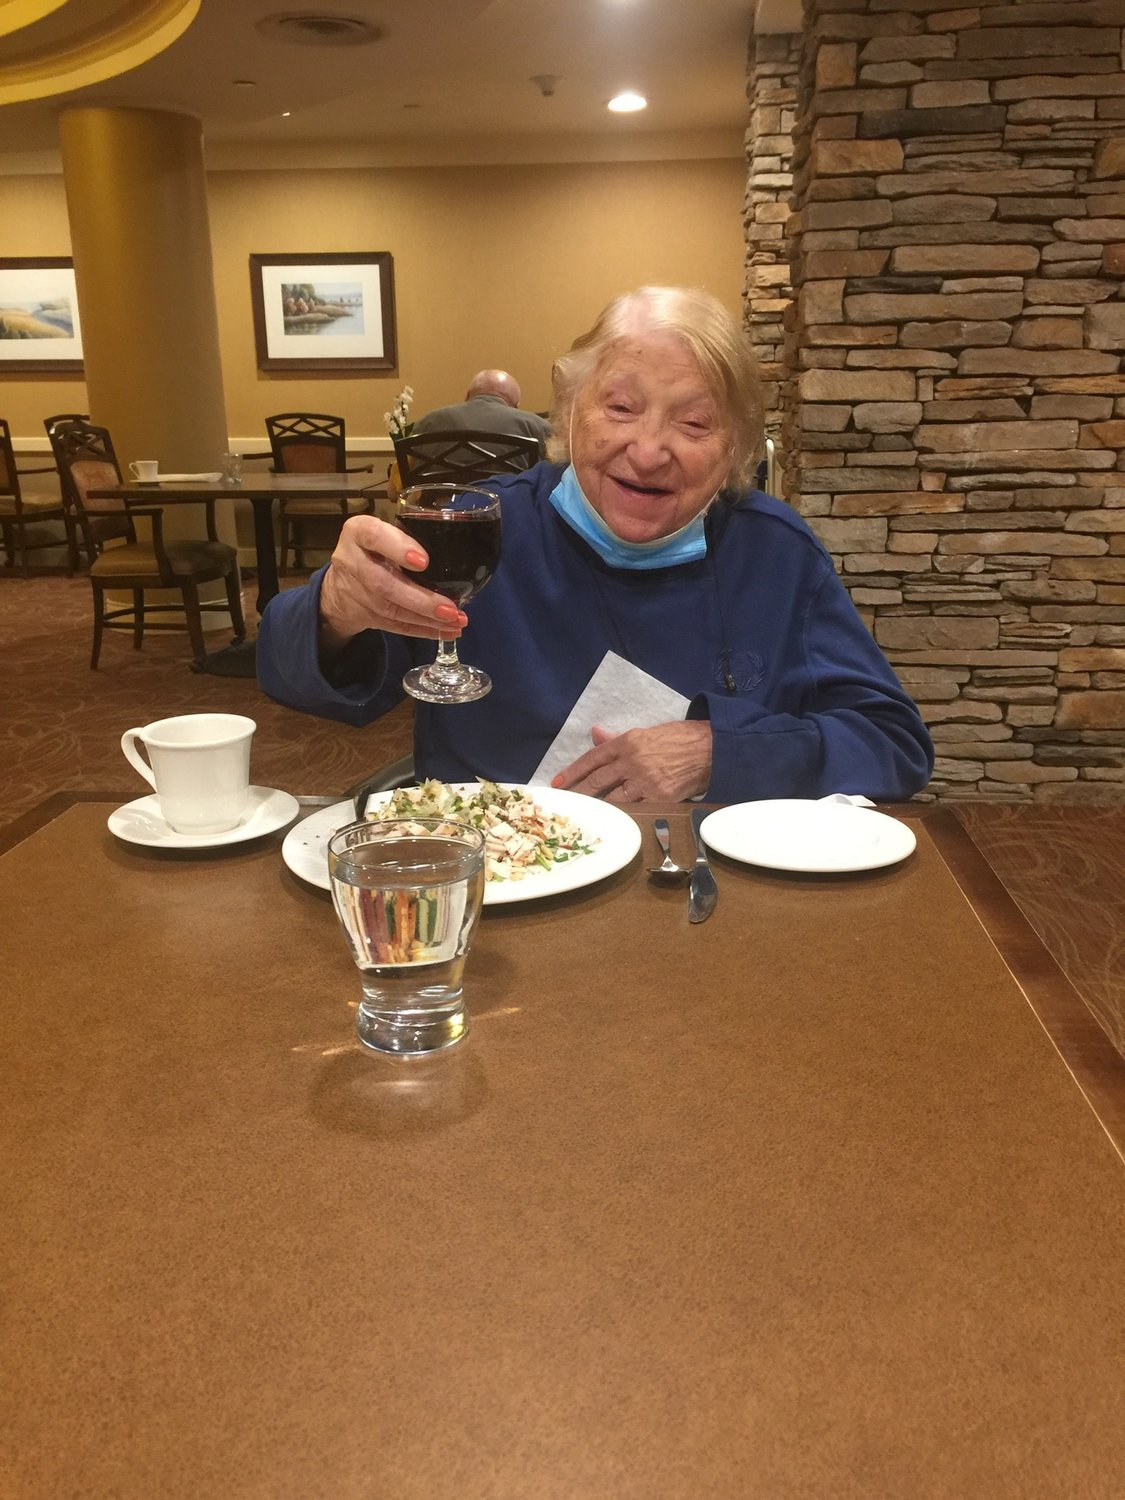 Atria Glen Cove resident Gloria Panaro enjoyed dining from a social distance.